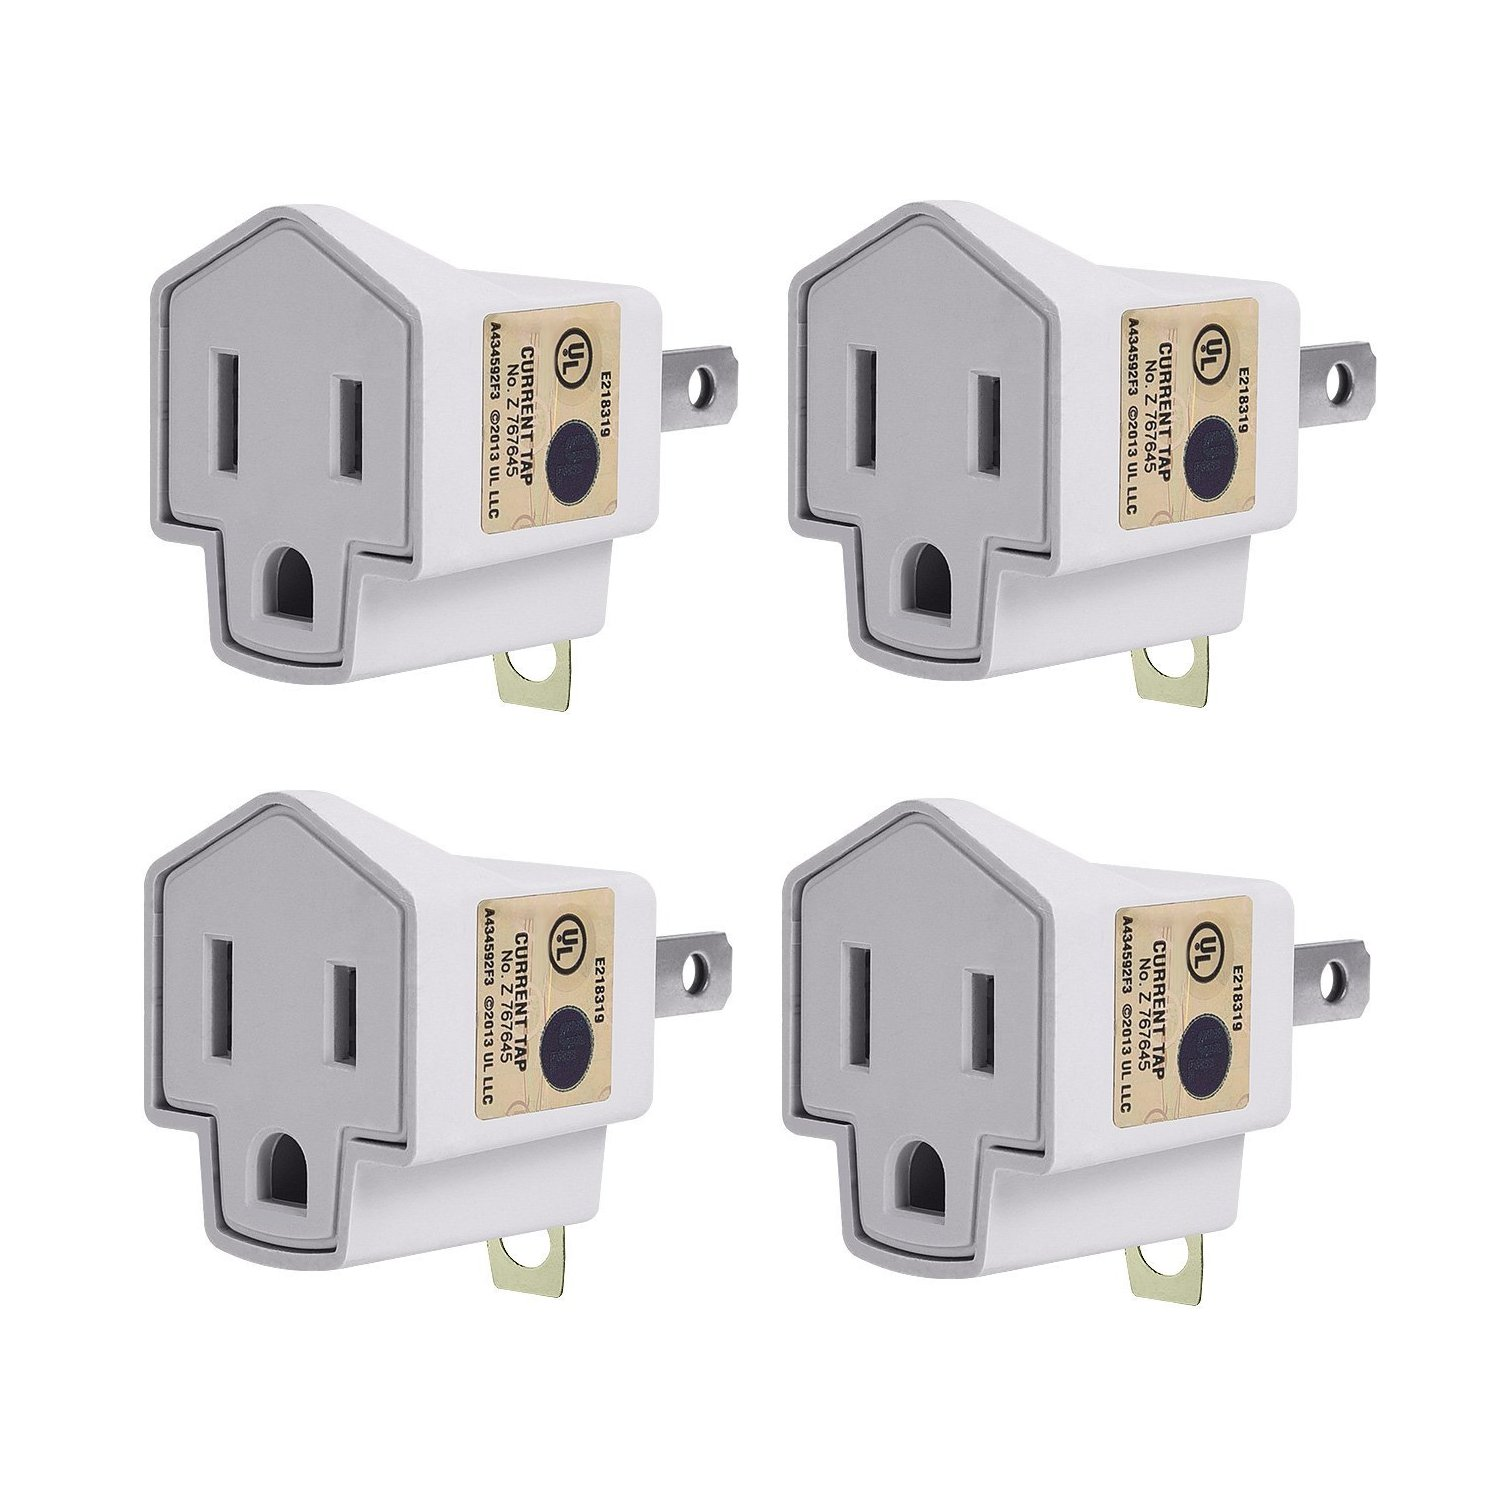 3-2 Prong Adapters Grounding Adapter-JACKYLED UL 3-Prong Adapter Converter Fireproof Material 200℃ Resistant Heavy Duty for Wall Outlets Household Workshops 4-pack